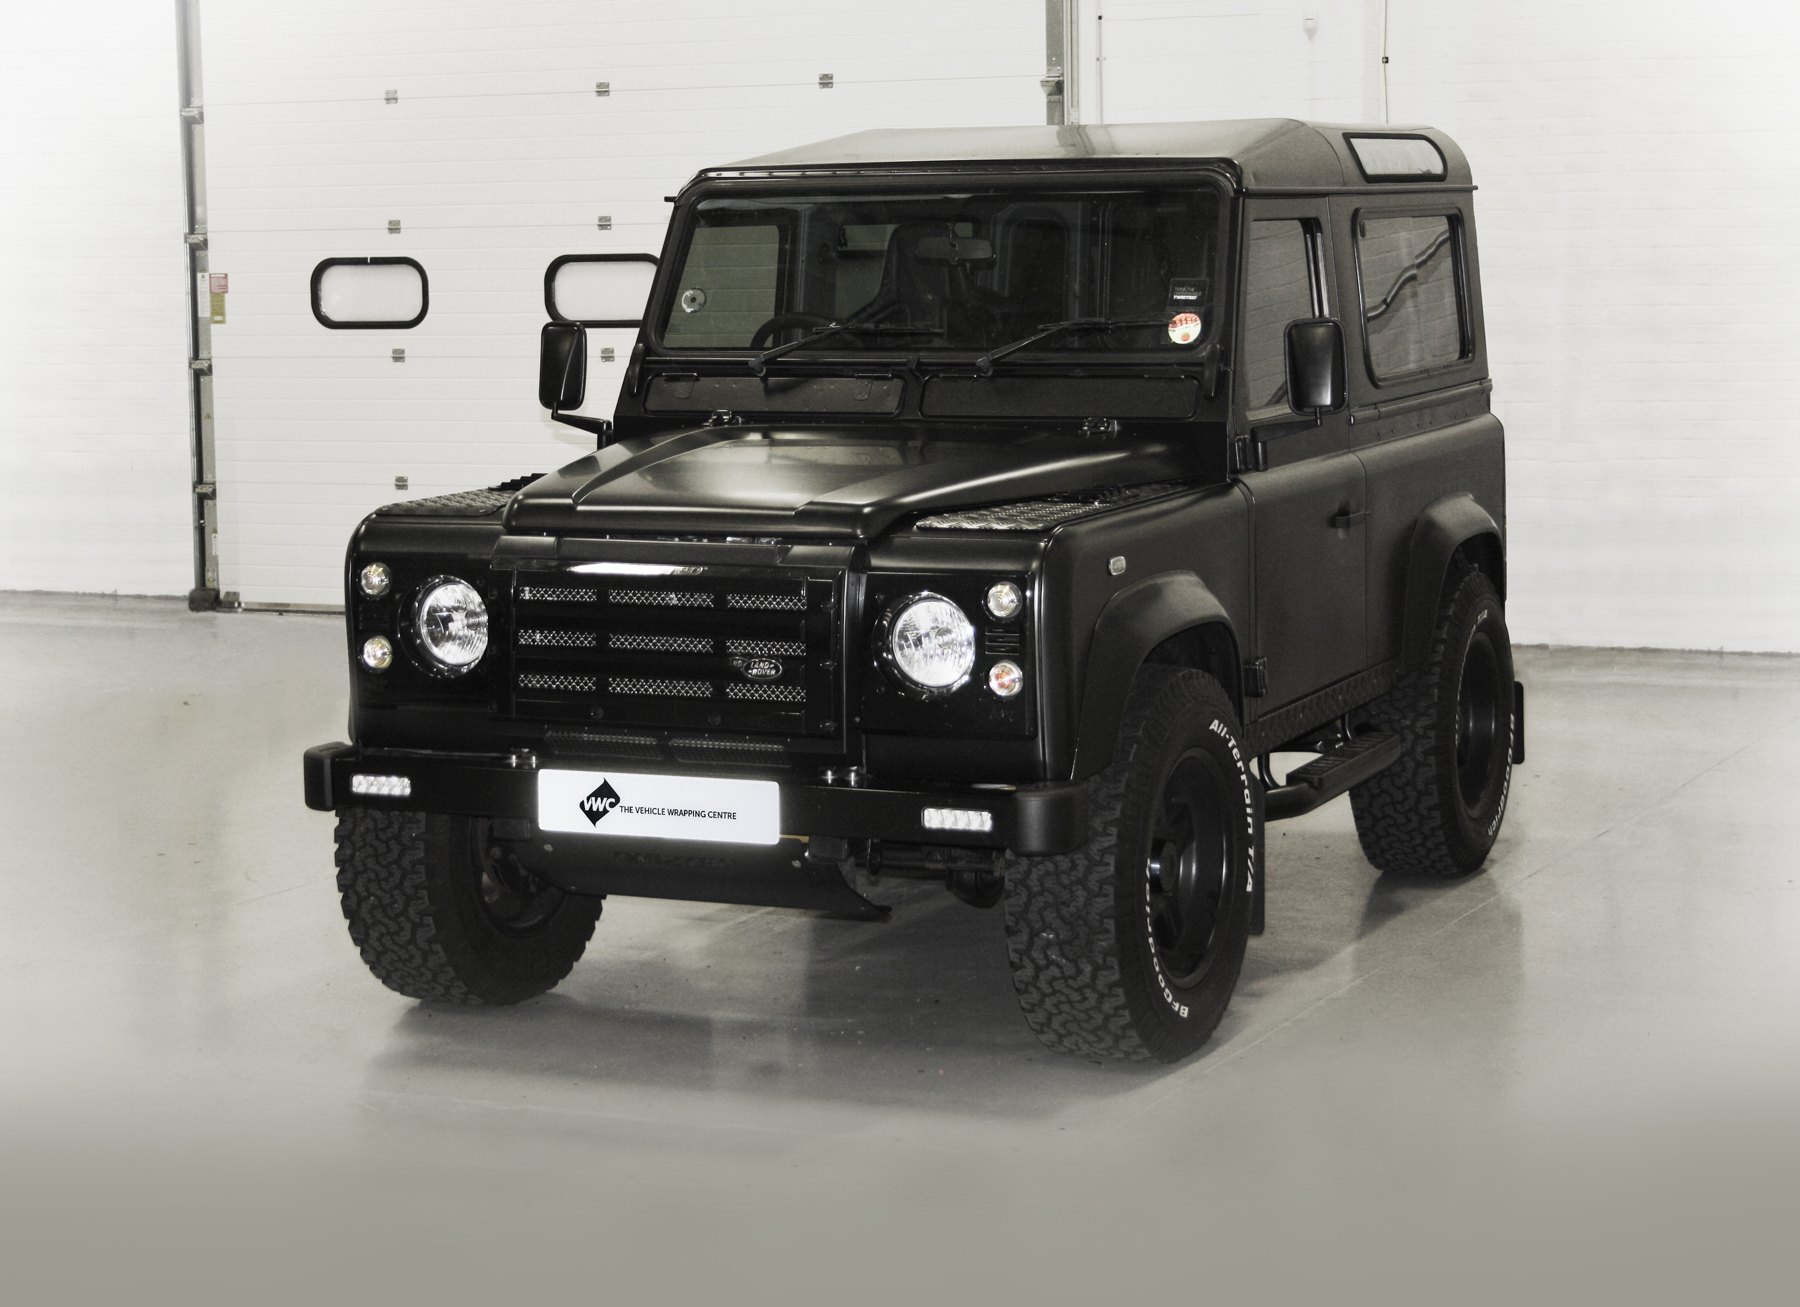 Land Rover Defender - Matt Black IG